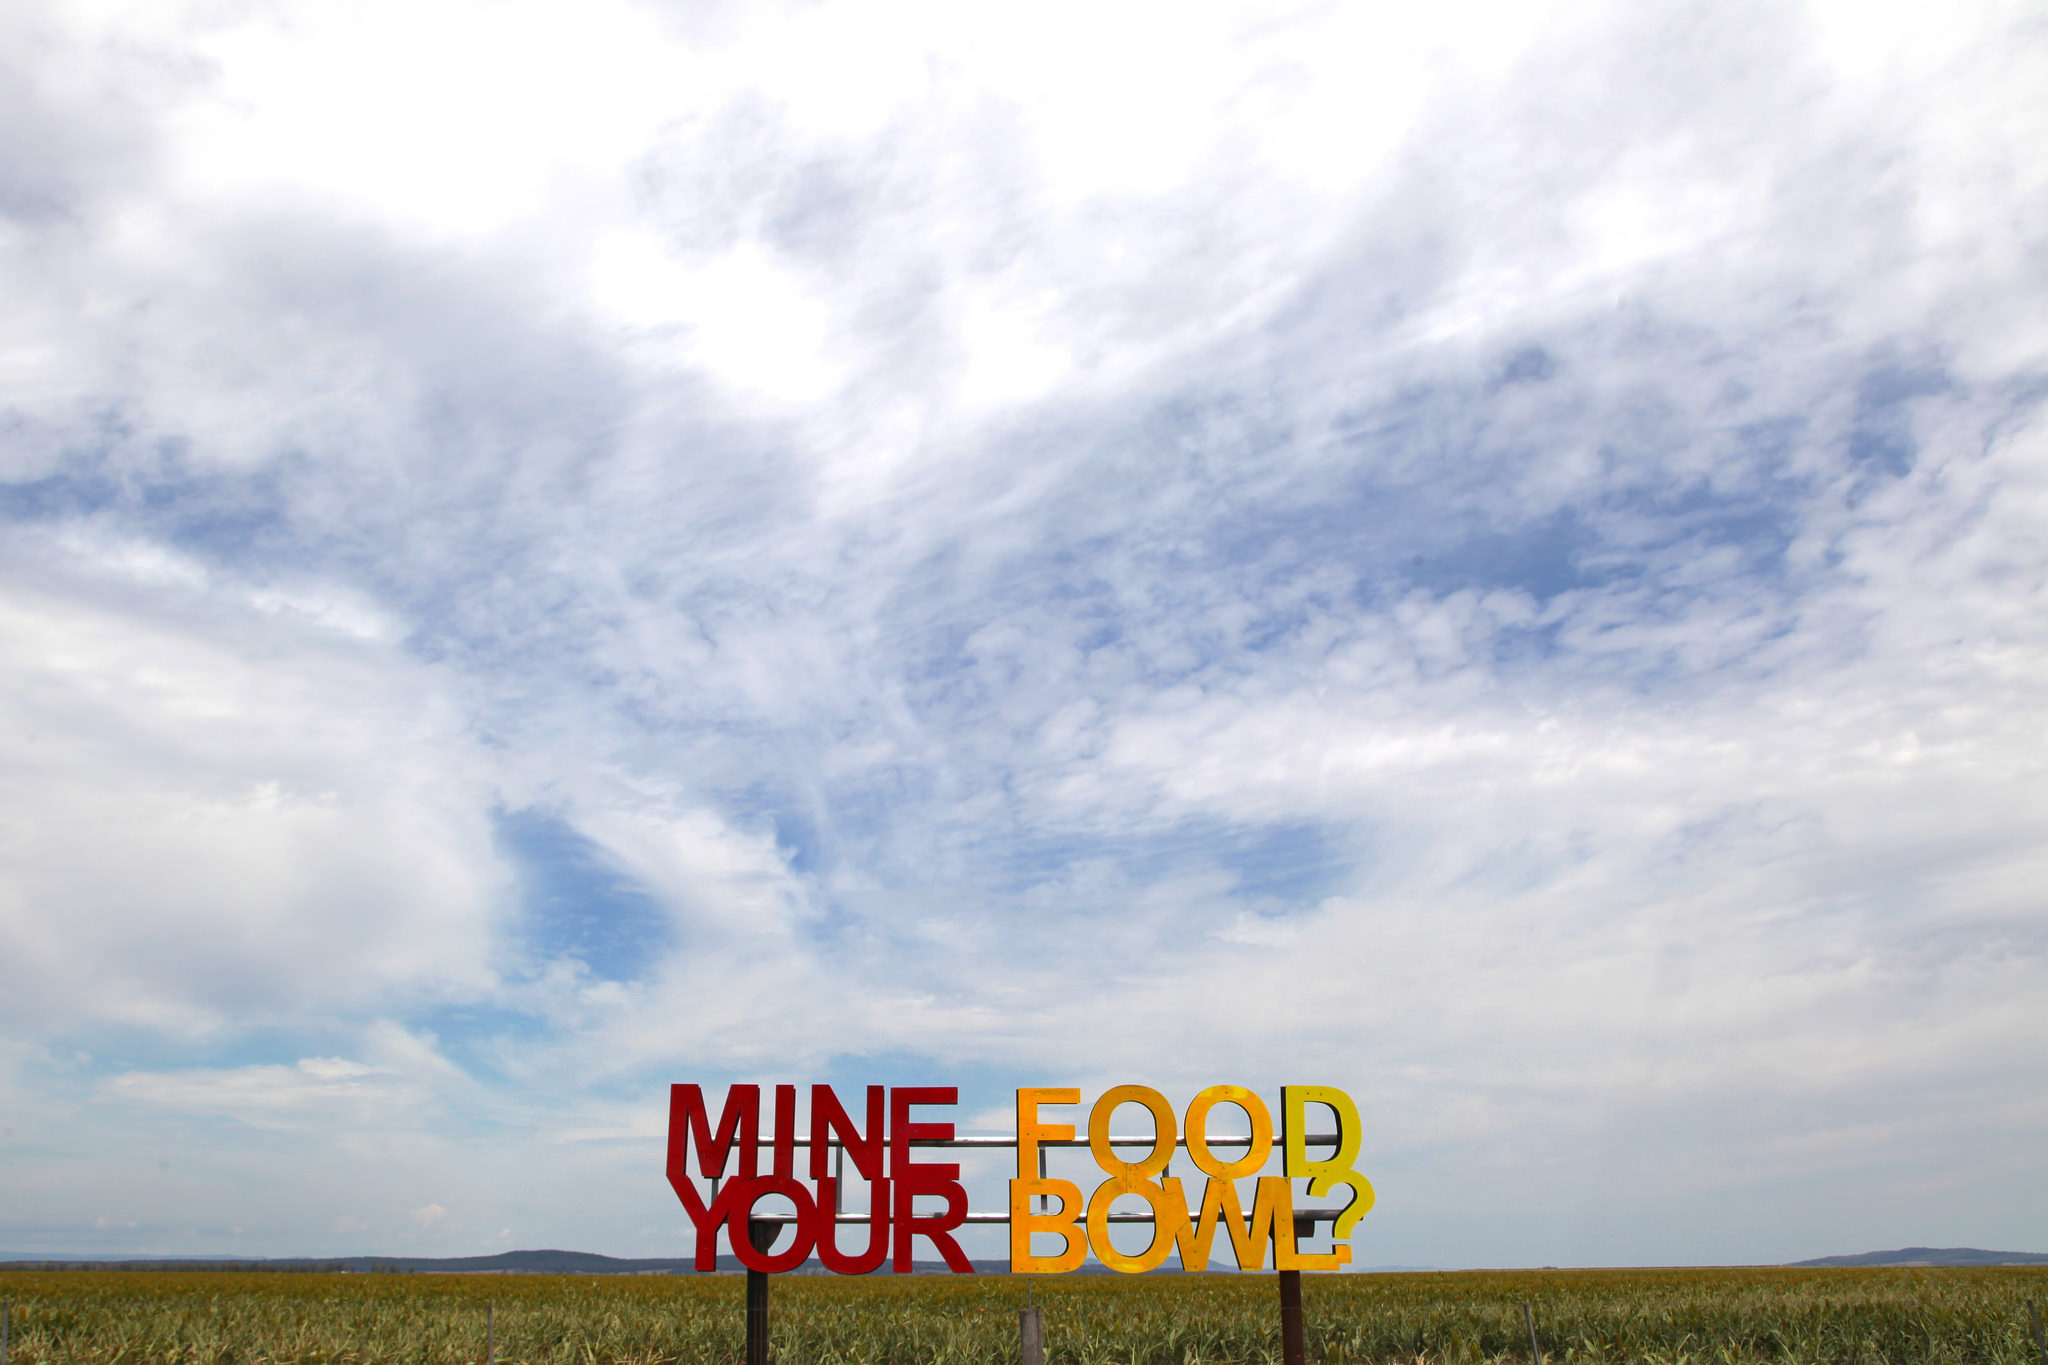 'Mine Your Food Bowl?' art installation at Breeza on the Liverpool Plains.